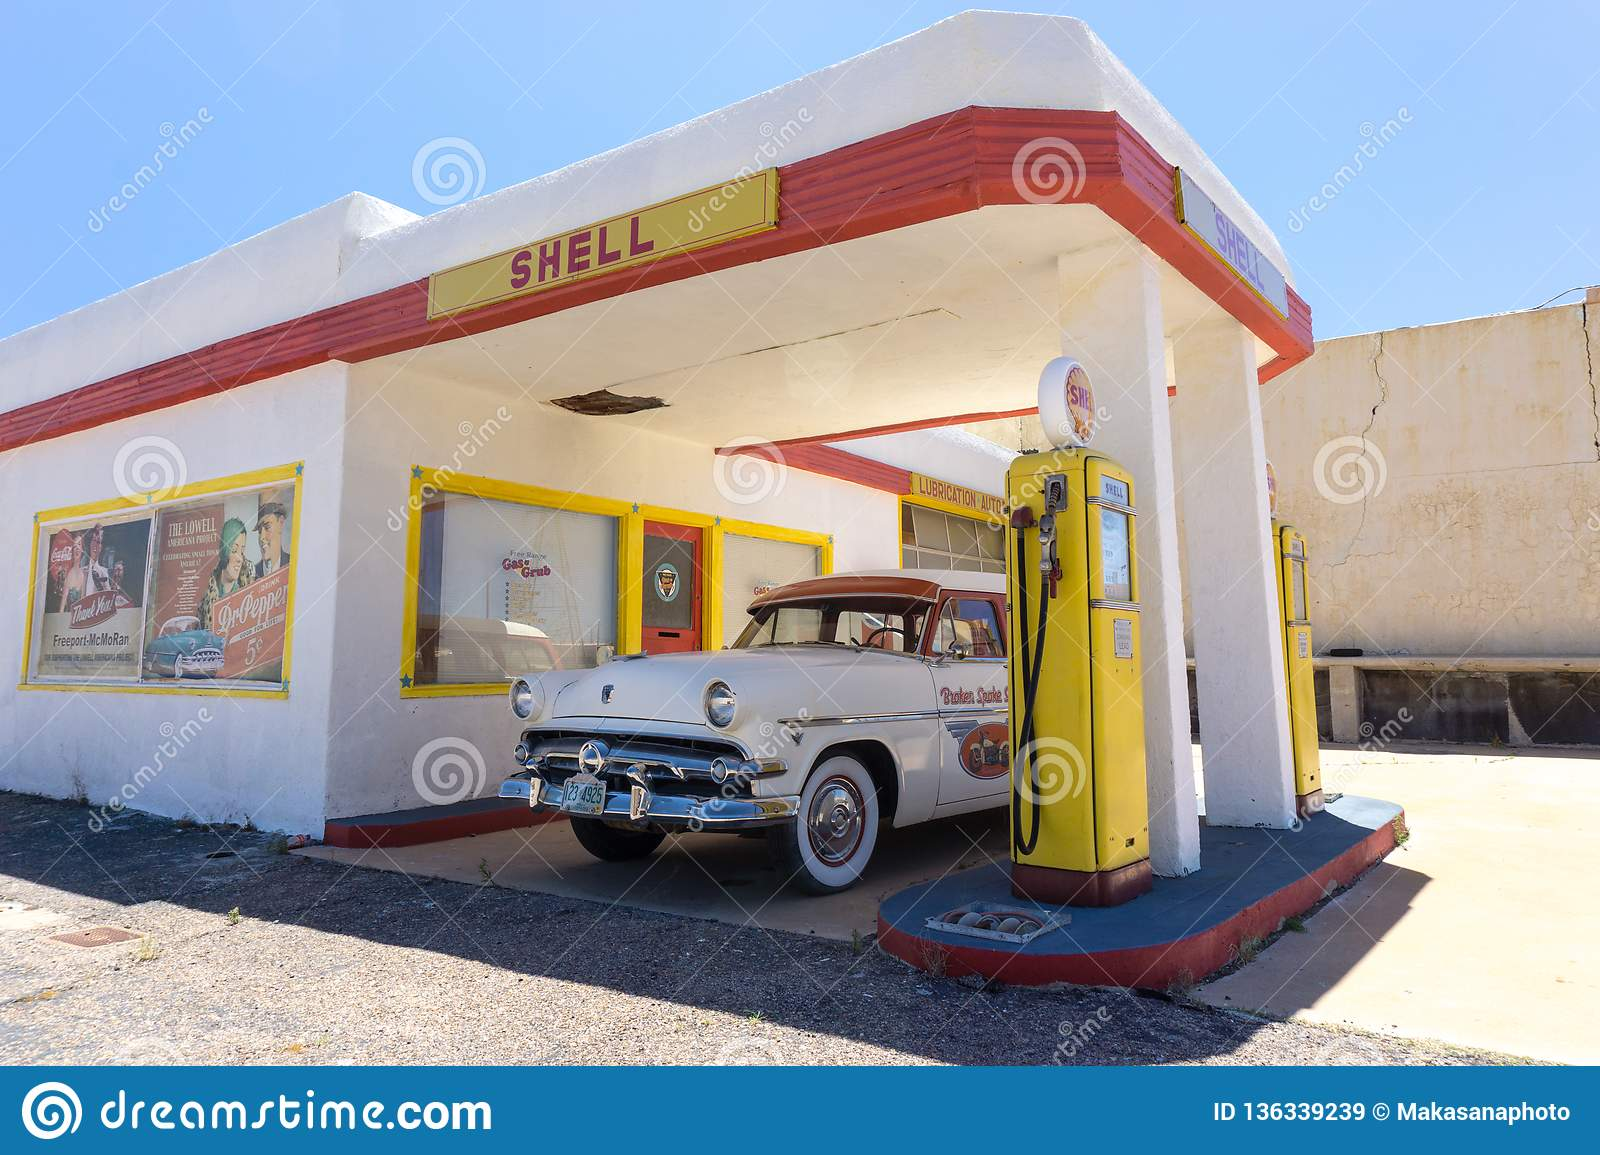 Lowell Az Usa July 12 2016 Old Fuel Pump And Classic Car At An Abandoned Ghost Town Gas Station Editorial Stock Image Image Of Automobile Colorful 136339239